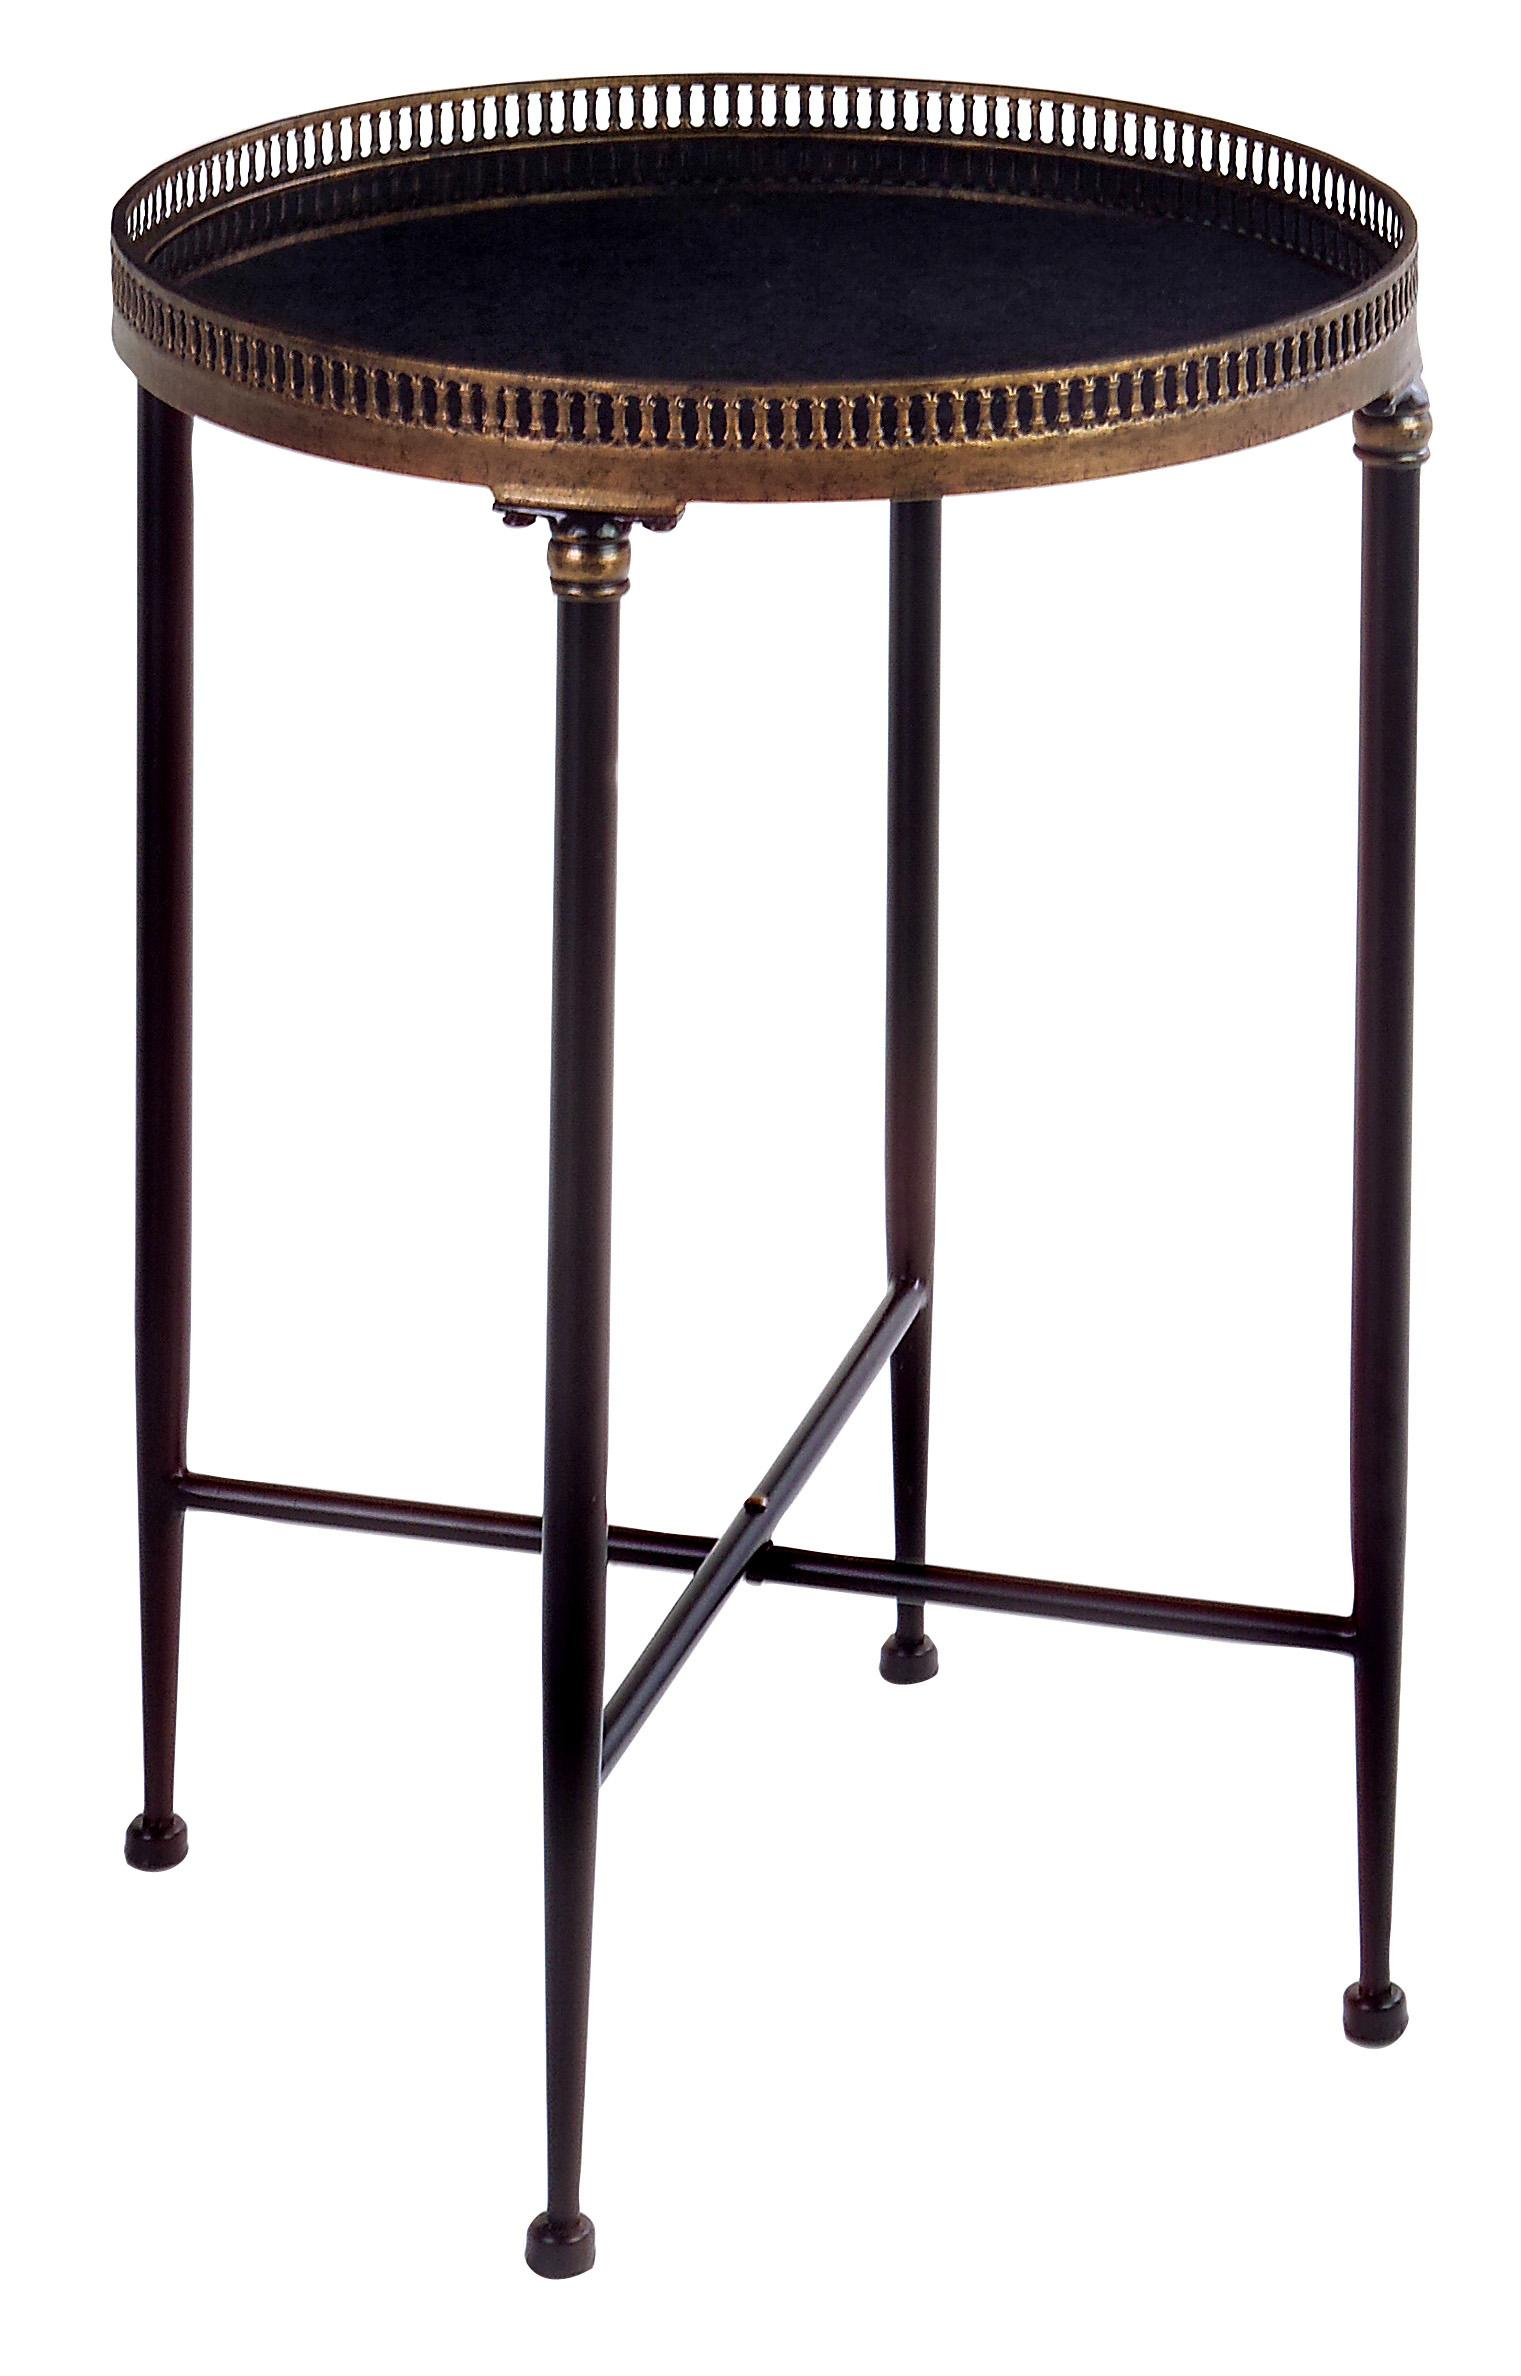 round black accent table ojcommerce small metal yamaha drum stool white wicker outdoor furniture light wood coffee sets pier imports patio used ethan allen tables reasonable grey